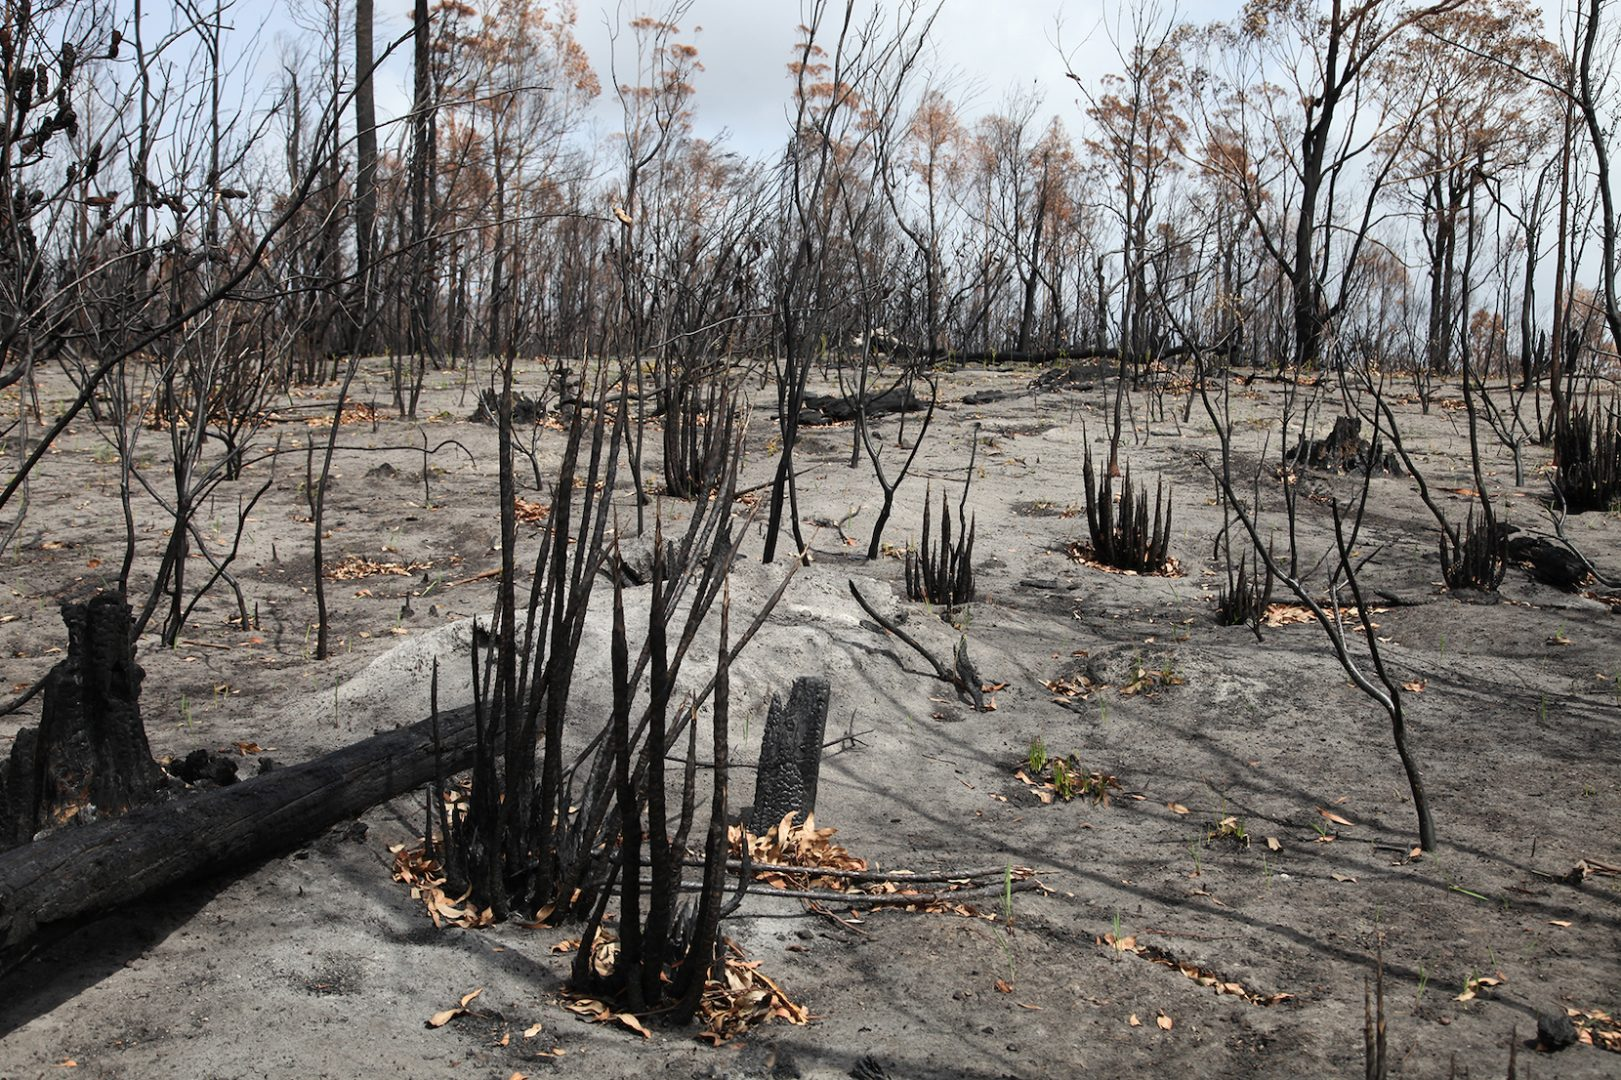 Artist and activist HAYDEN FOWLER on the Australian bushfires 8